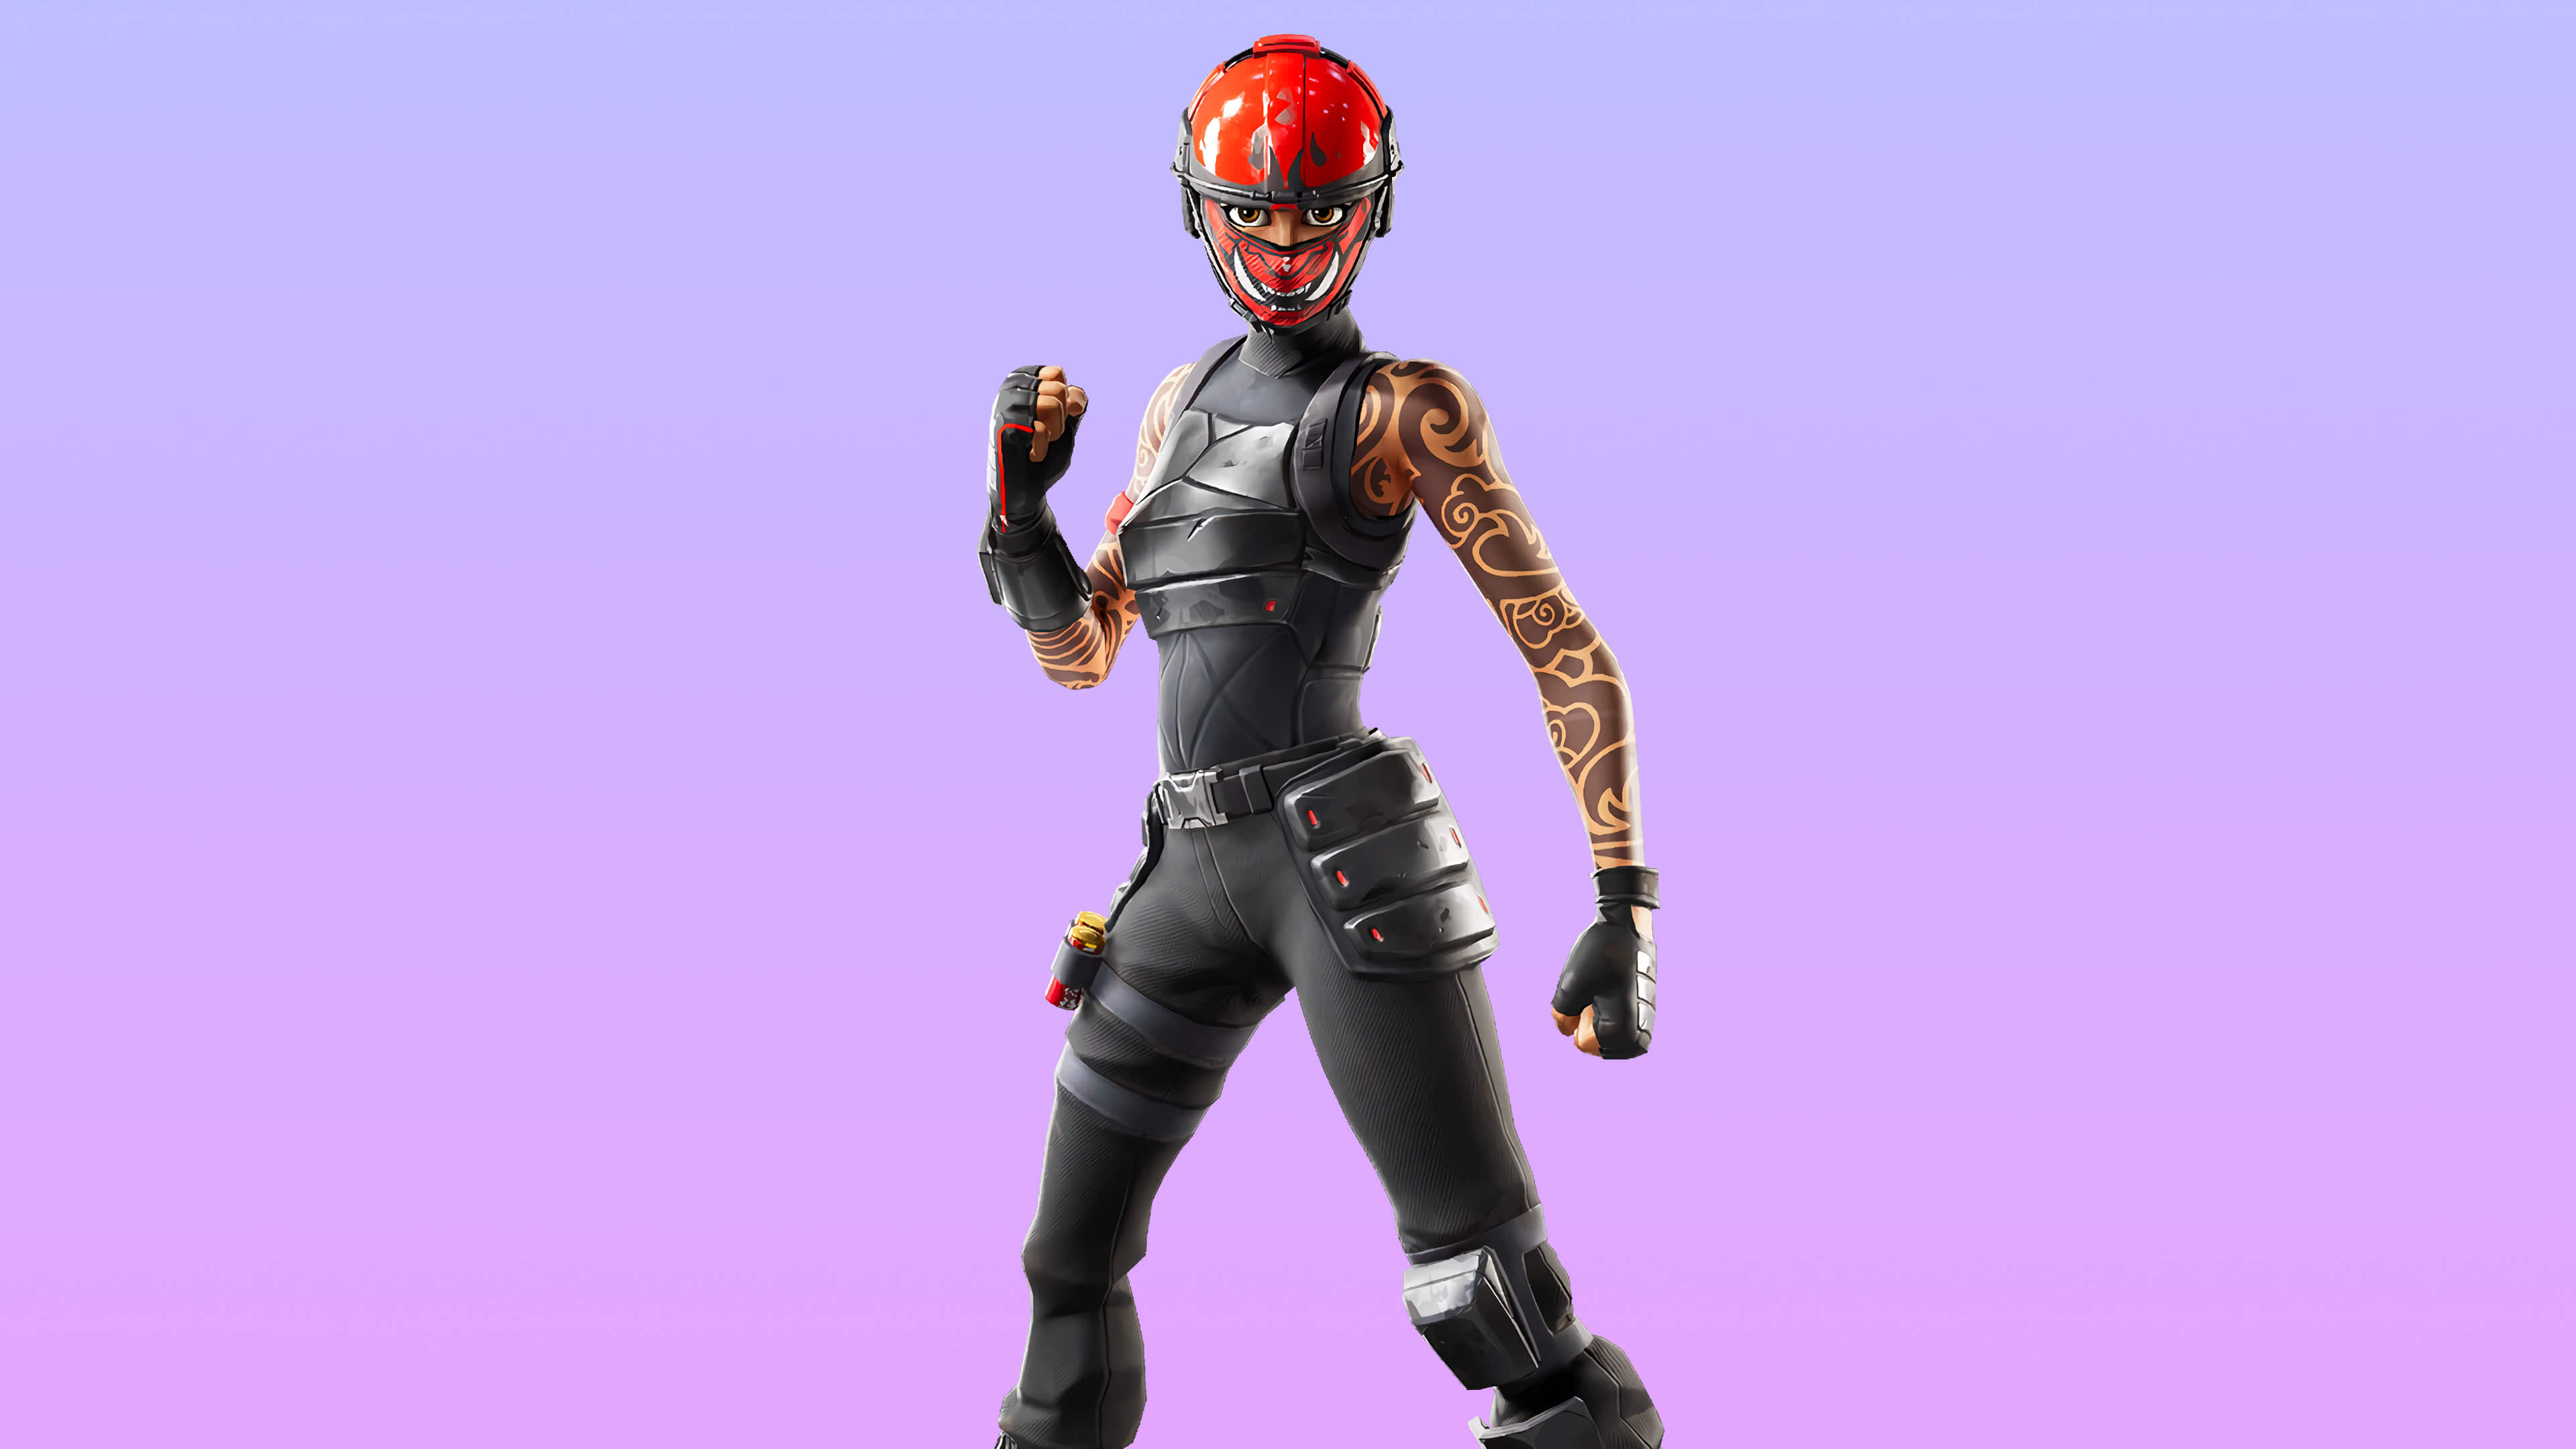 Fortnite Manic Skin Outfit Uhd 4k Wallpaper Pixelz